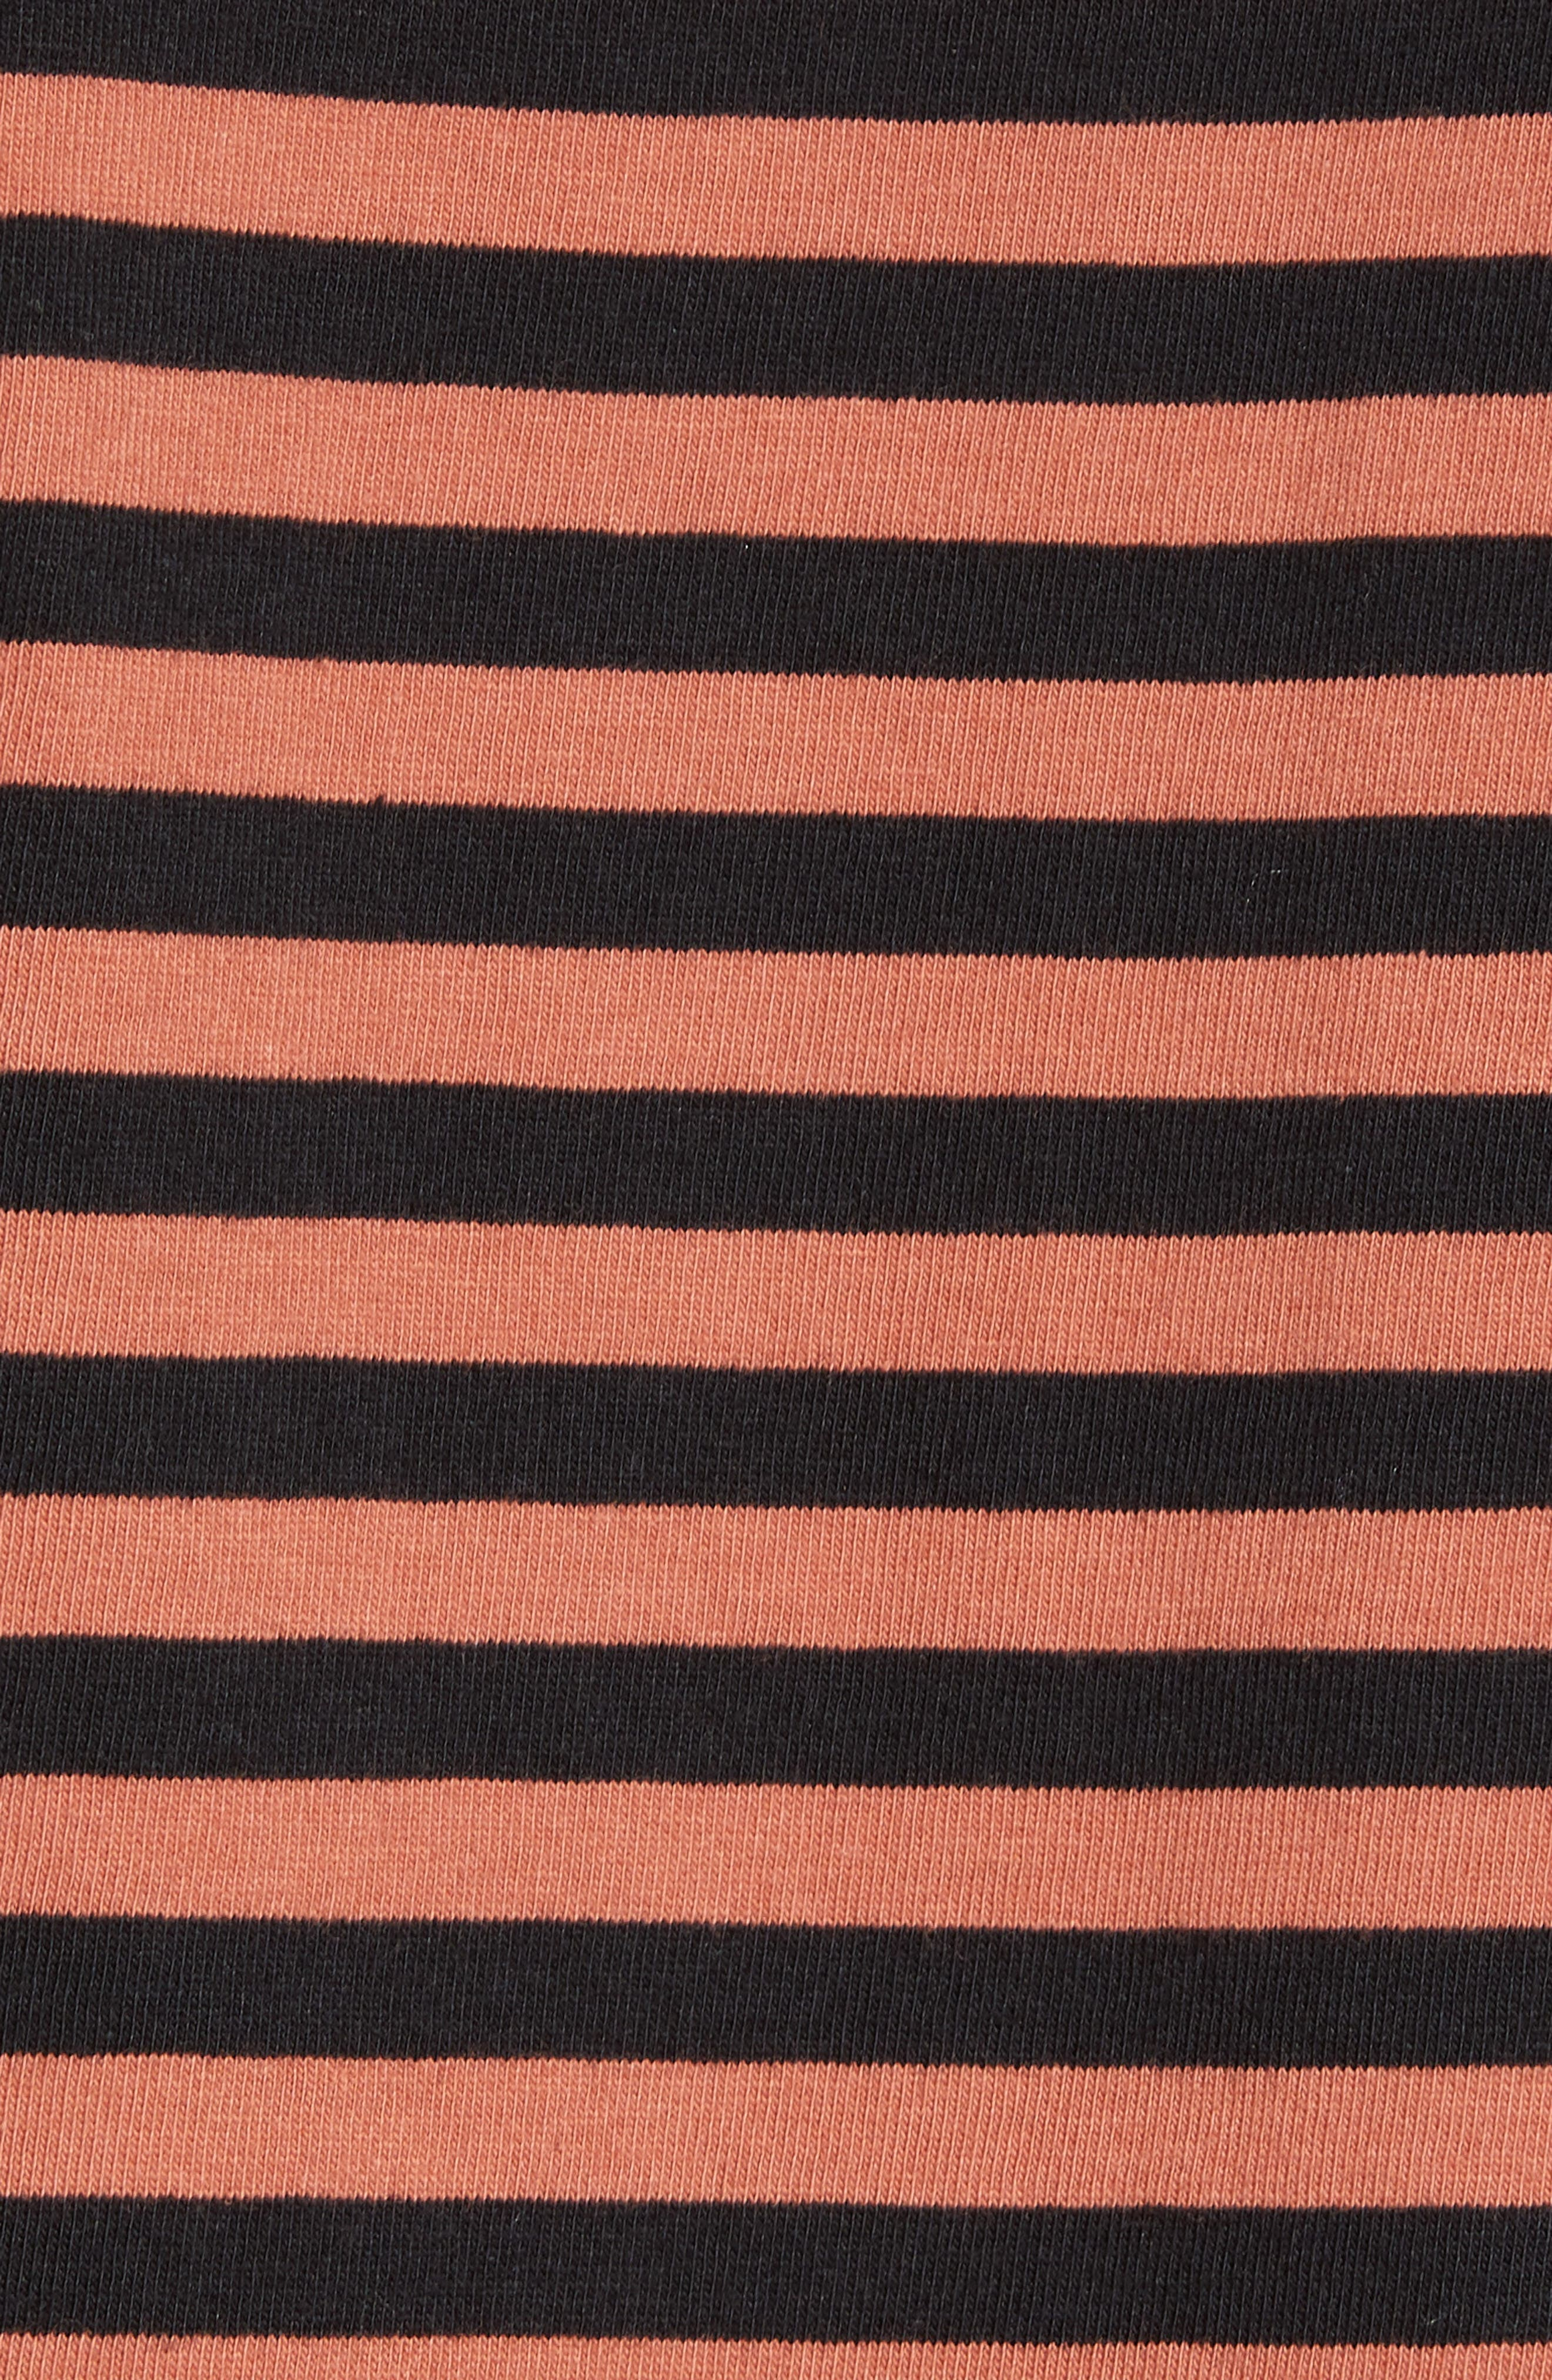 ZABEROBE Stripe Box T-Shirt,                             Alternate thumbnail 5, color,                             BRONZE/ BLACK